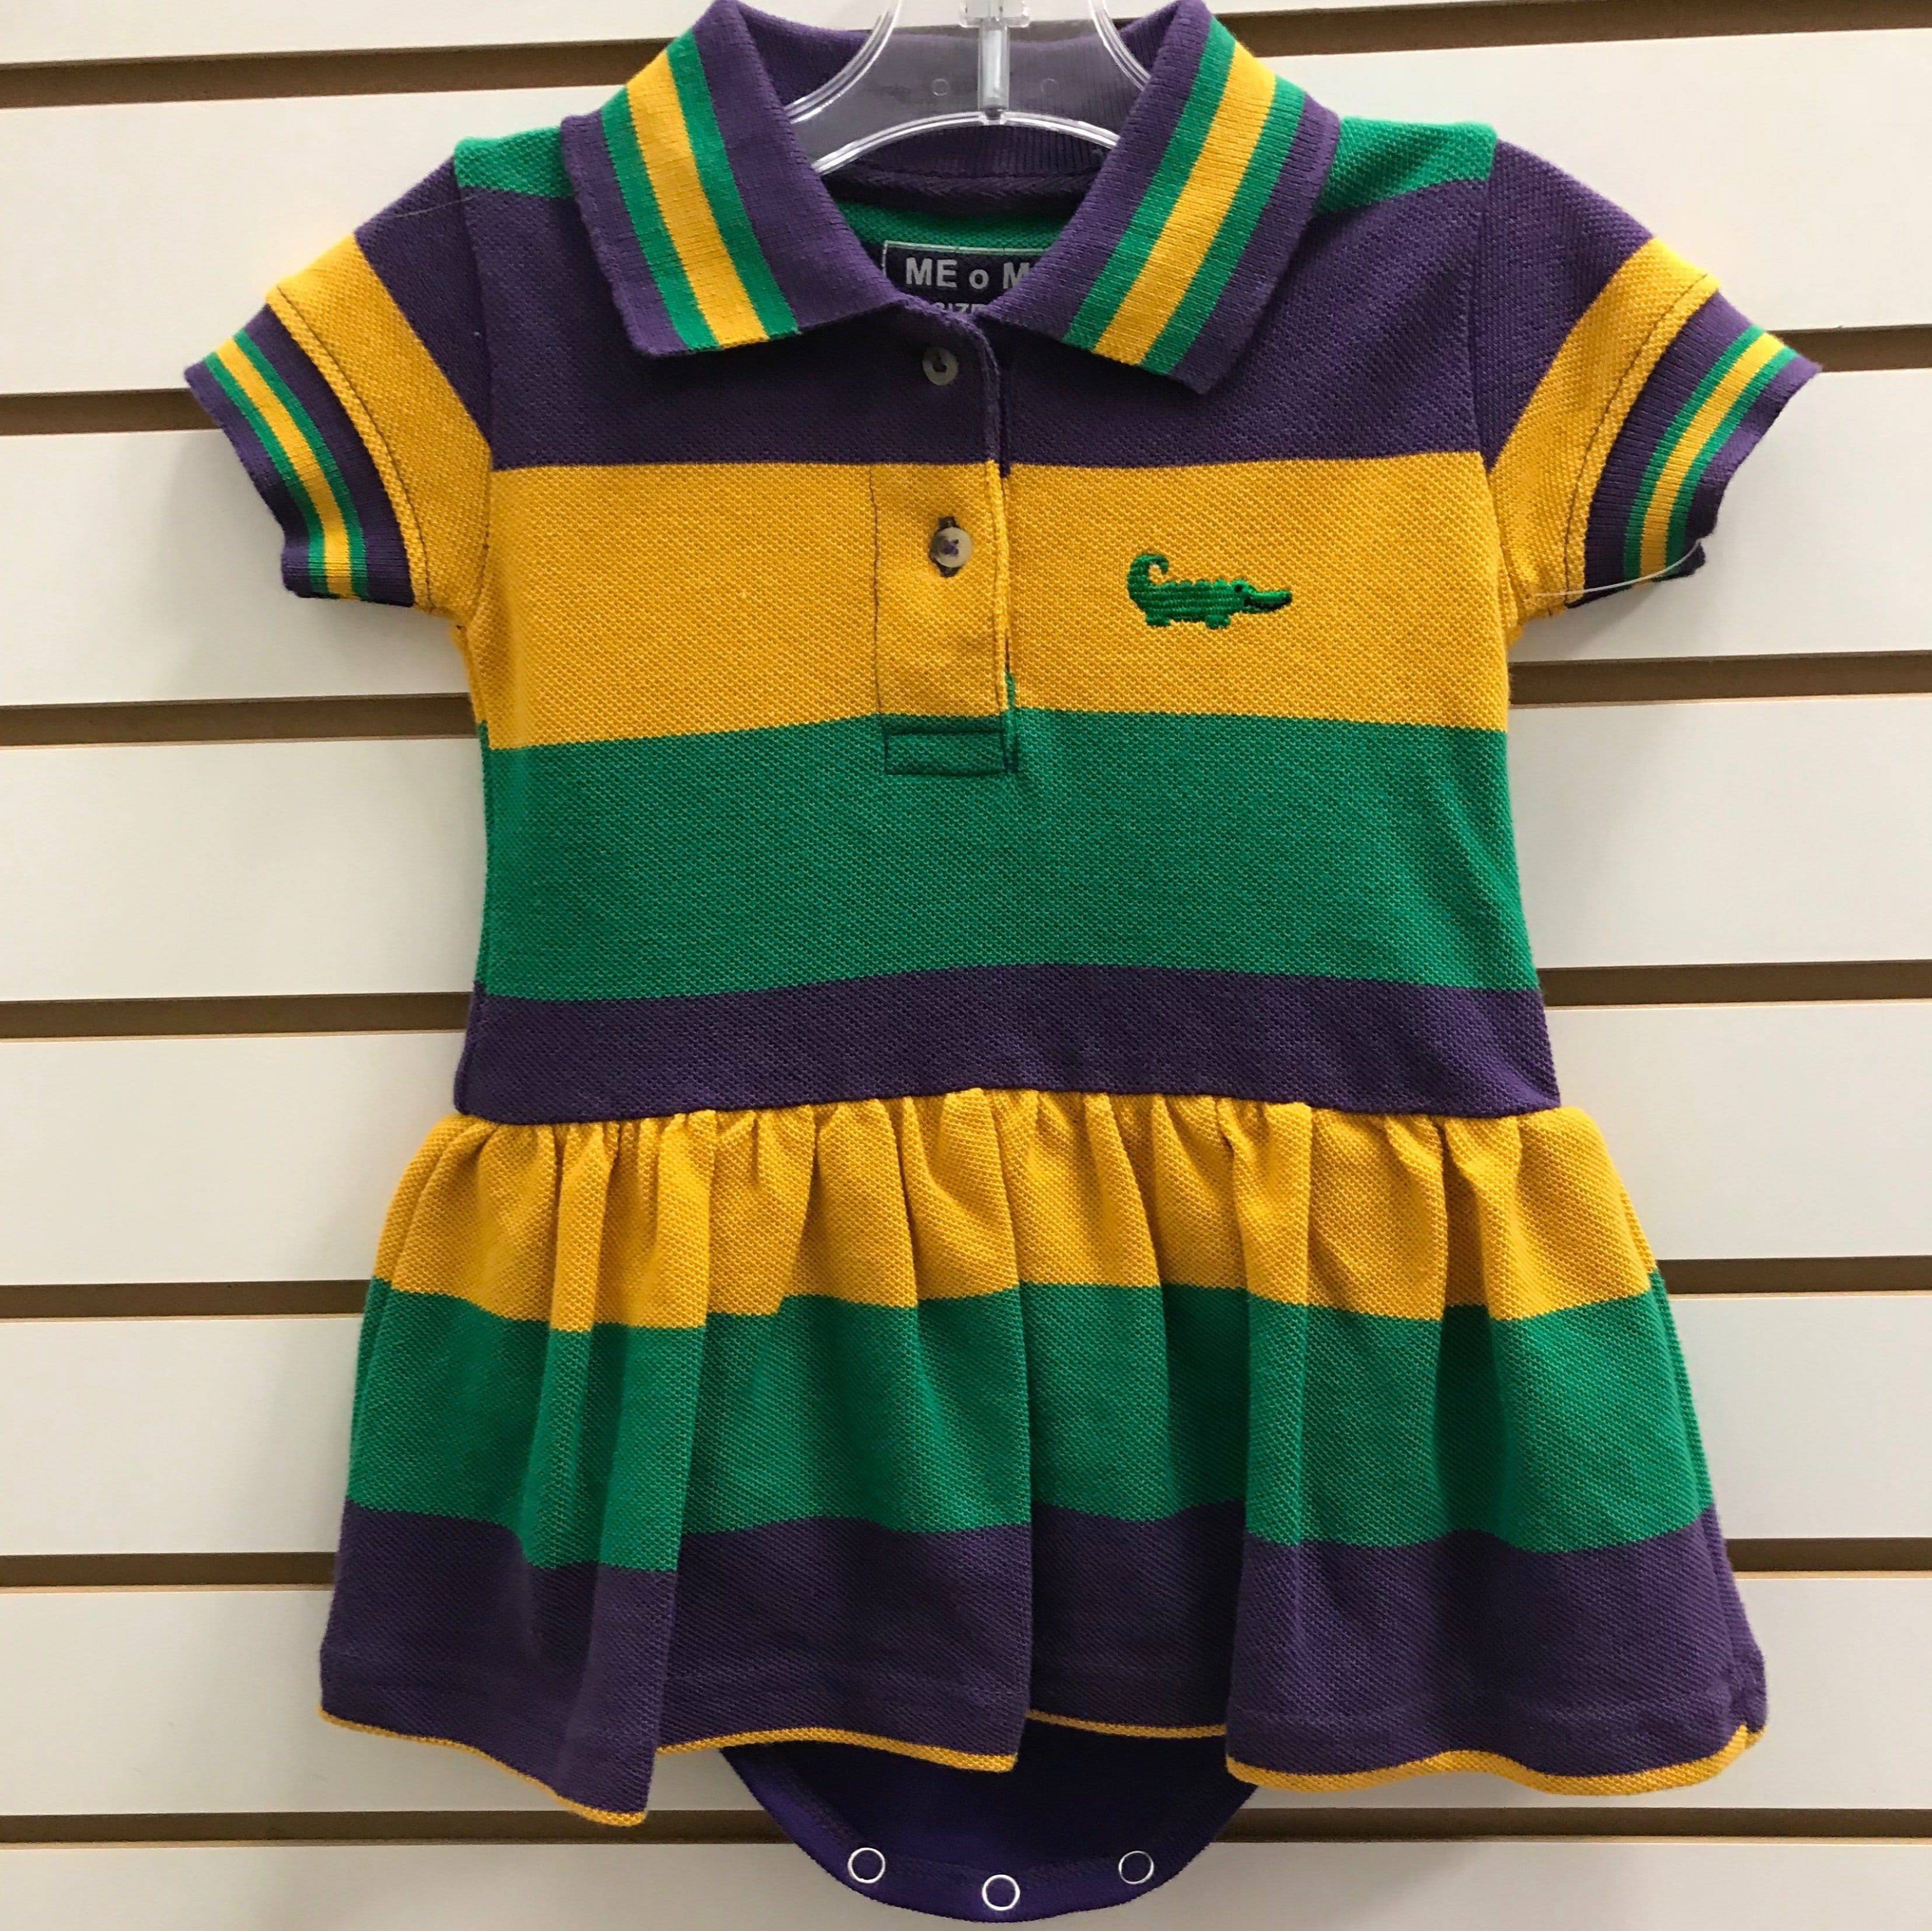 cab34f885e7 Me Me's Short Sleeve Mardi Gras Polo Dress – Little Miss Muffin ...